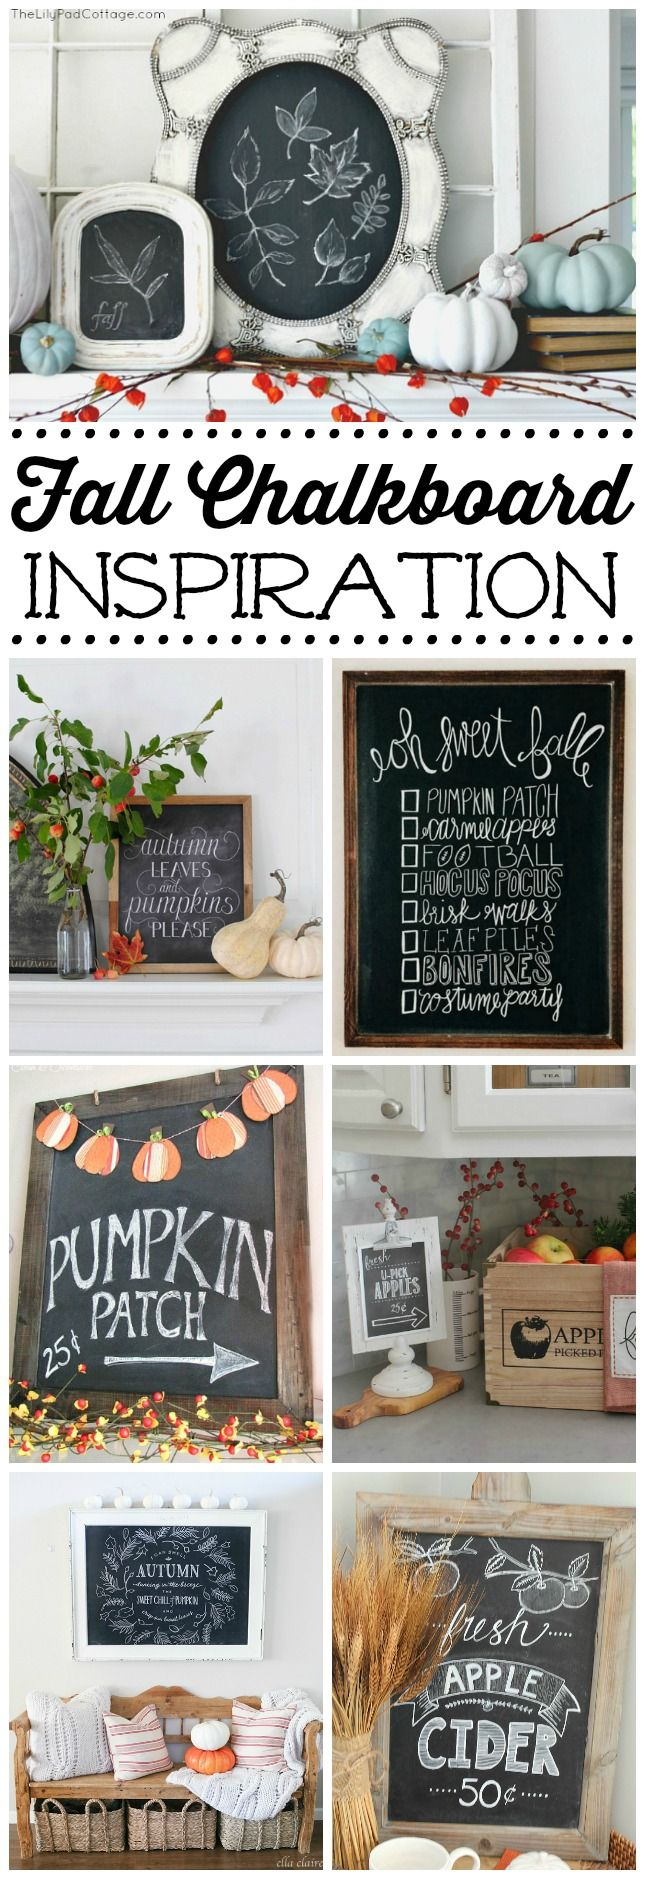 Best Chalkboard Designs Ideas On Pinterest Chalkboard